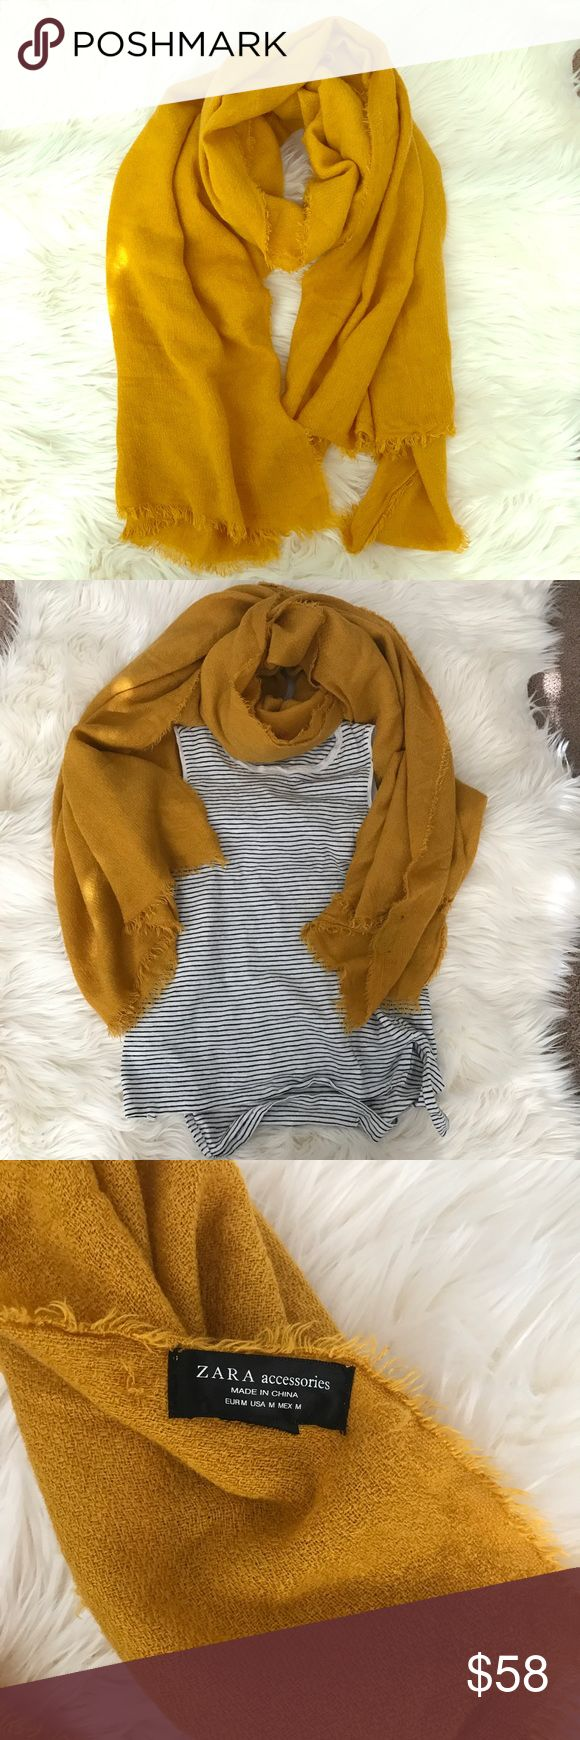 Zara Gold/Mustard Color Warm Scarf Zara Gold/Mustard Color Warm Scarf. Worn once. Super cute to add a pop of color to a plain outfit. Zara Other